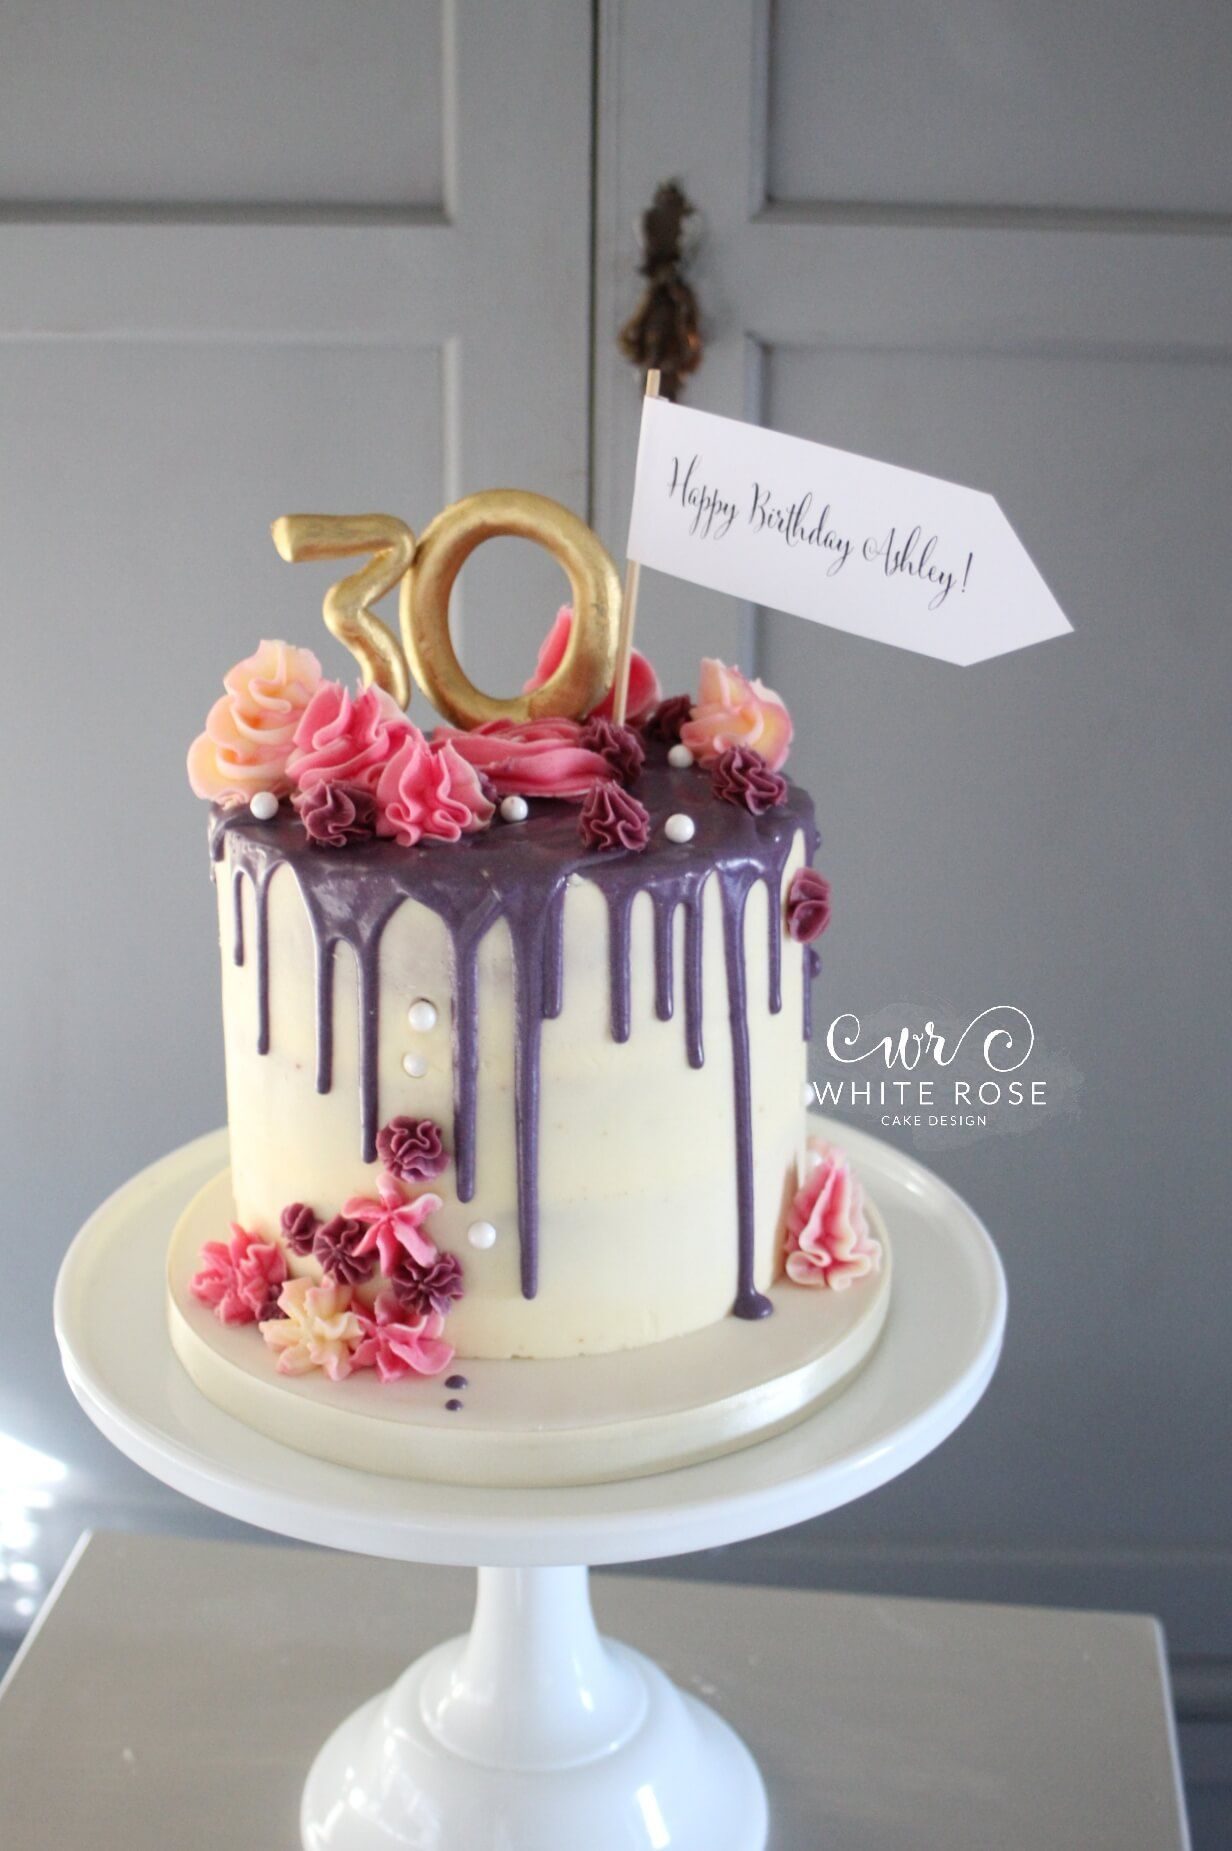 30th Drippy Birthday Cake By White Rose Cake Design 2 Torten